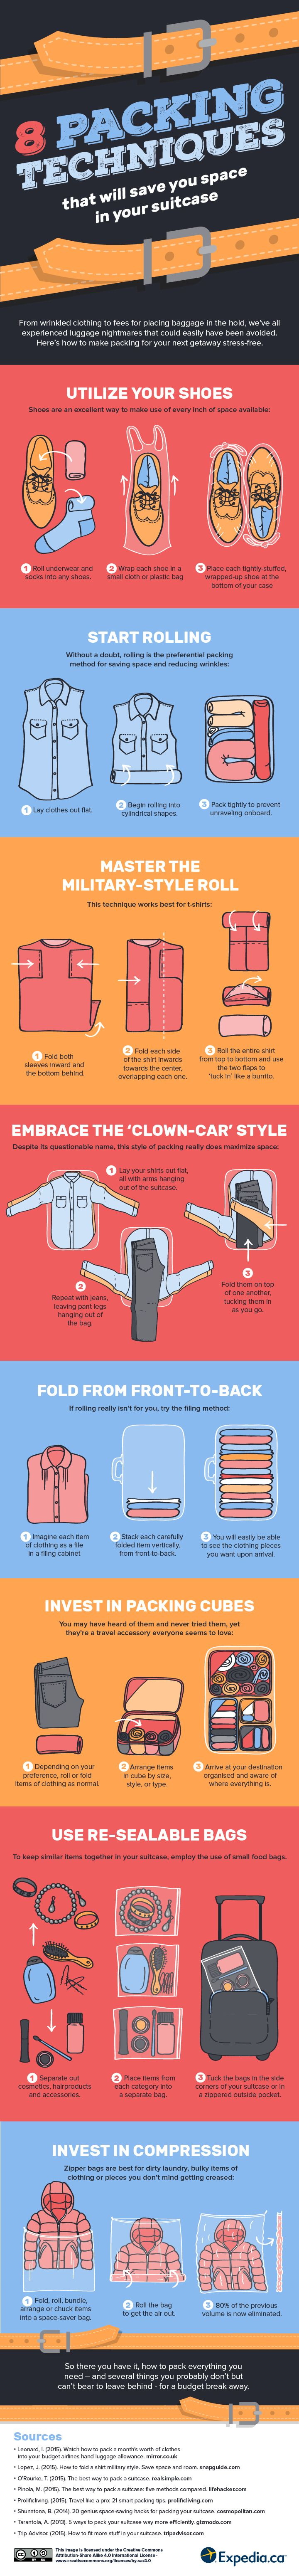 Best Suitcase Packing Tips Ideas On Pinterest Light - 8 tips on how to pack light for your next vacation